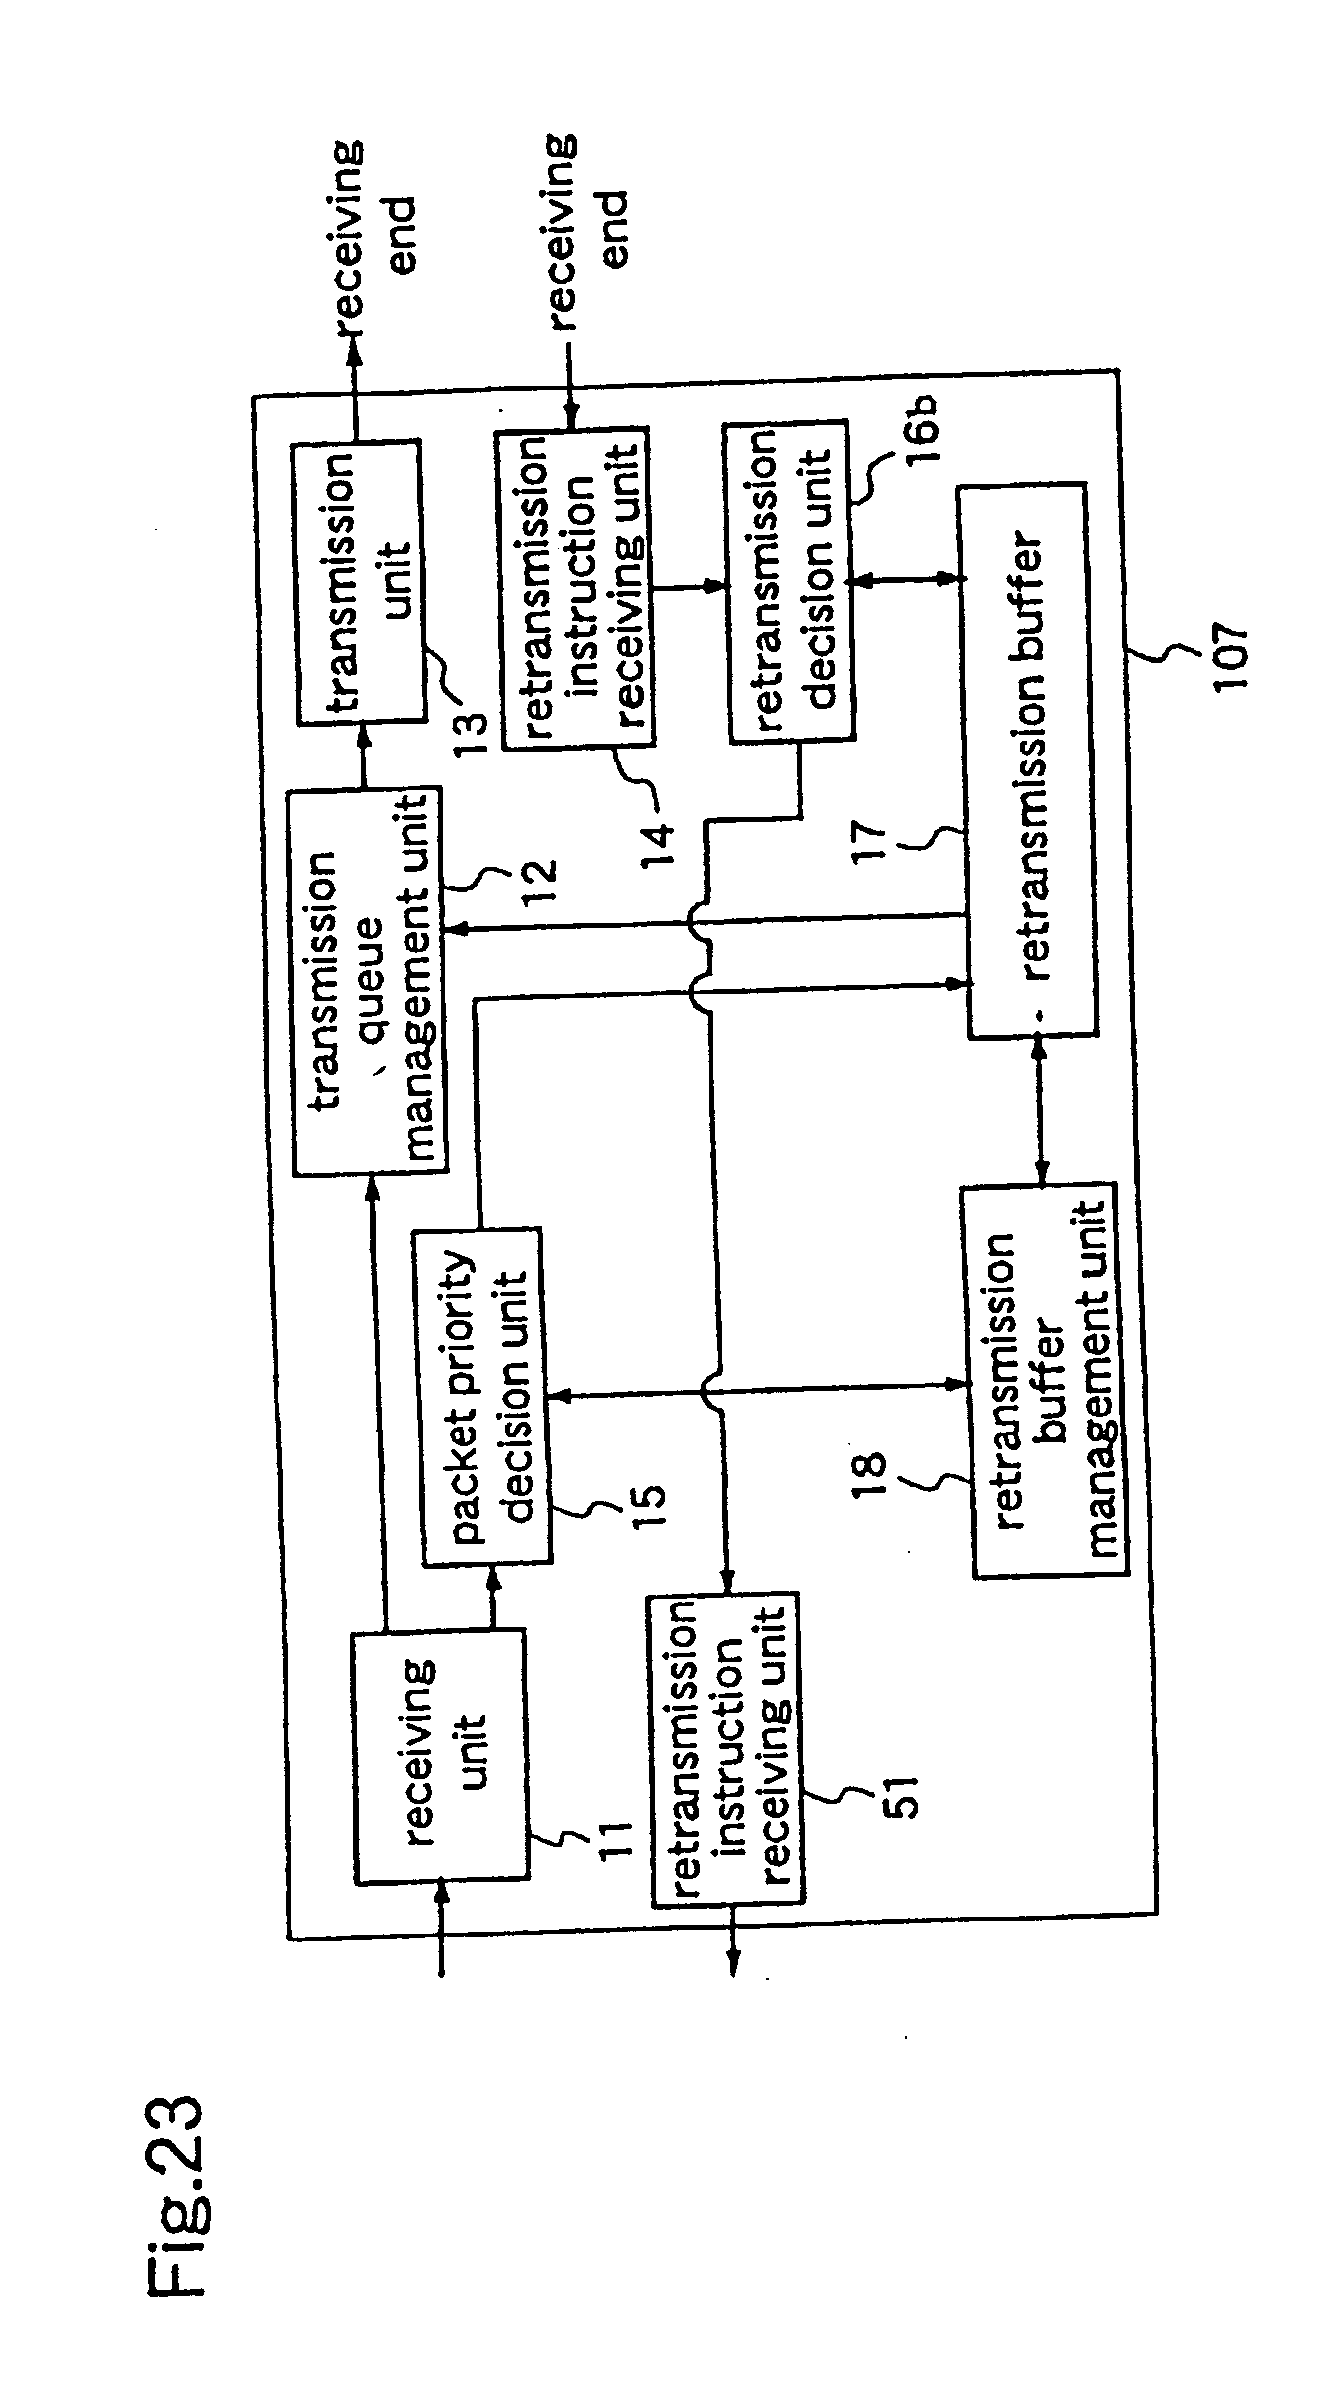 improved methodology for data transmission and The phrase data transmission can refer to many things, but in its most basic definition, data transmission is the physical transfer of data over a communication channel specifically, data transmission in information technology relies on computer networking equipment.